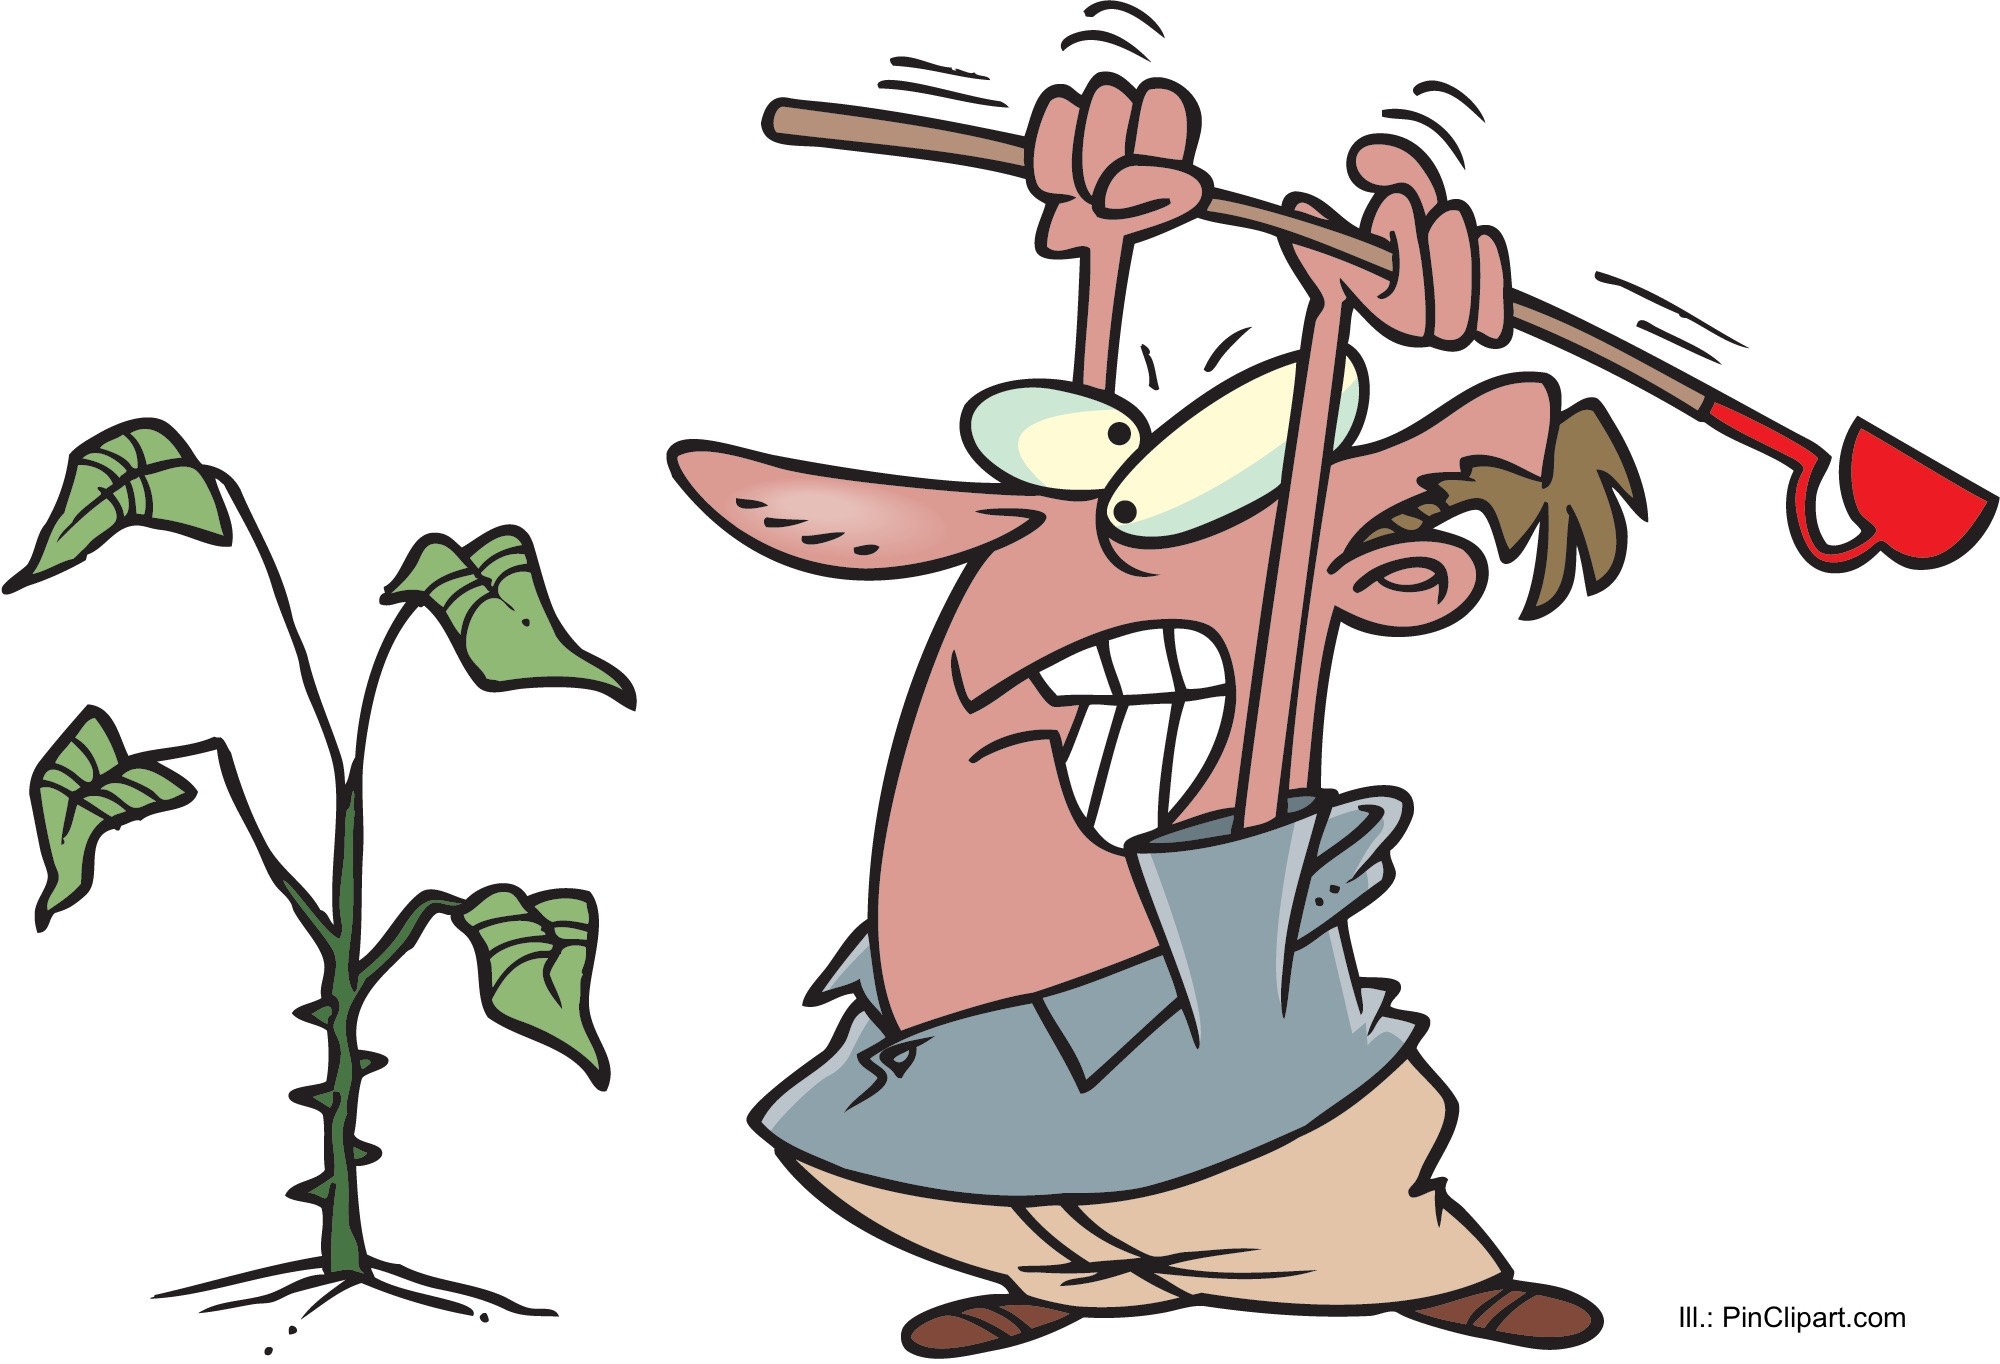 Gardener frustrated by a weed